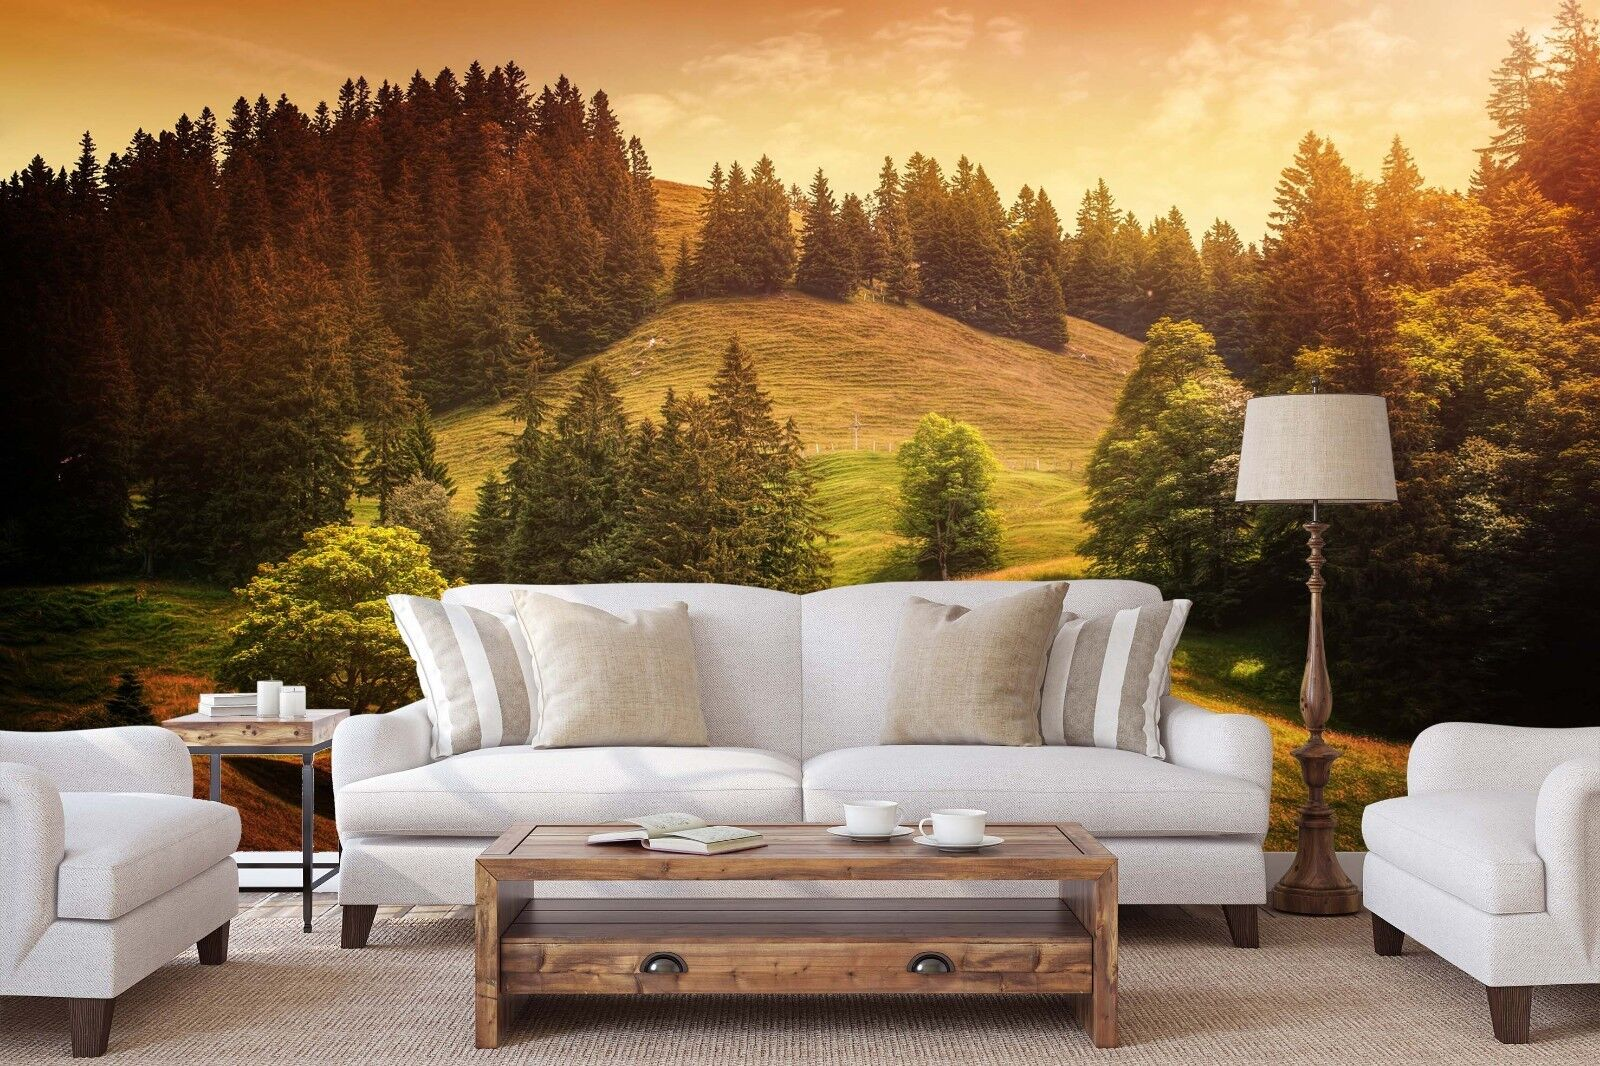 3D Forest Lawn 801 Wall Paper Print Wall Decal Deco Indoor Wall Murals US Summer